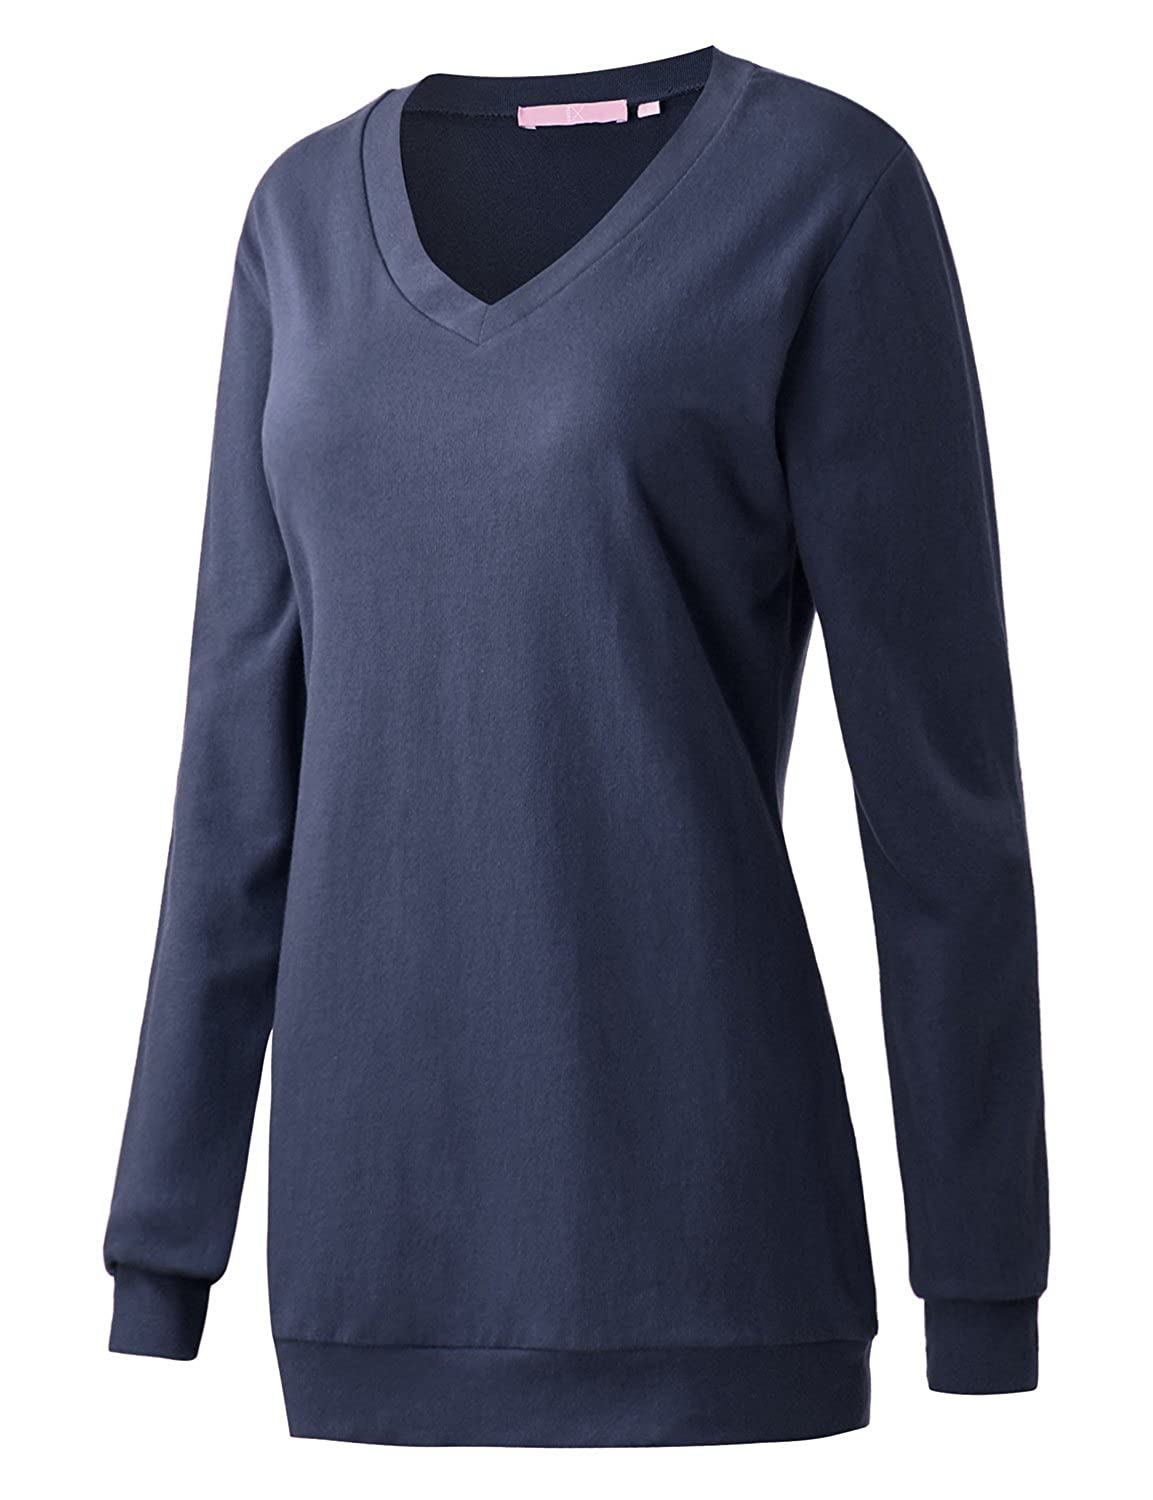 Regna X Long Sleeve Loose Casual Pullover Cute Sweatshirts Women (S-3x, we Have Plus Sizes) 8BTBW17102NYD_XL